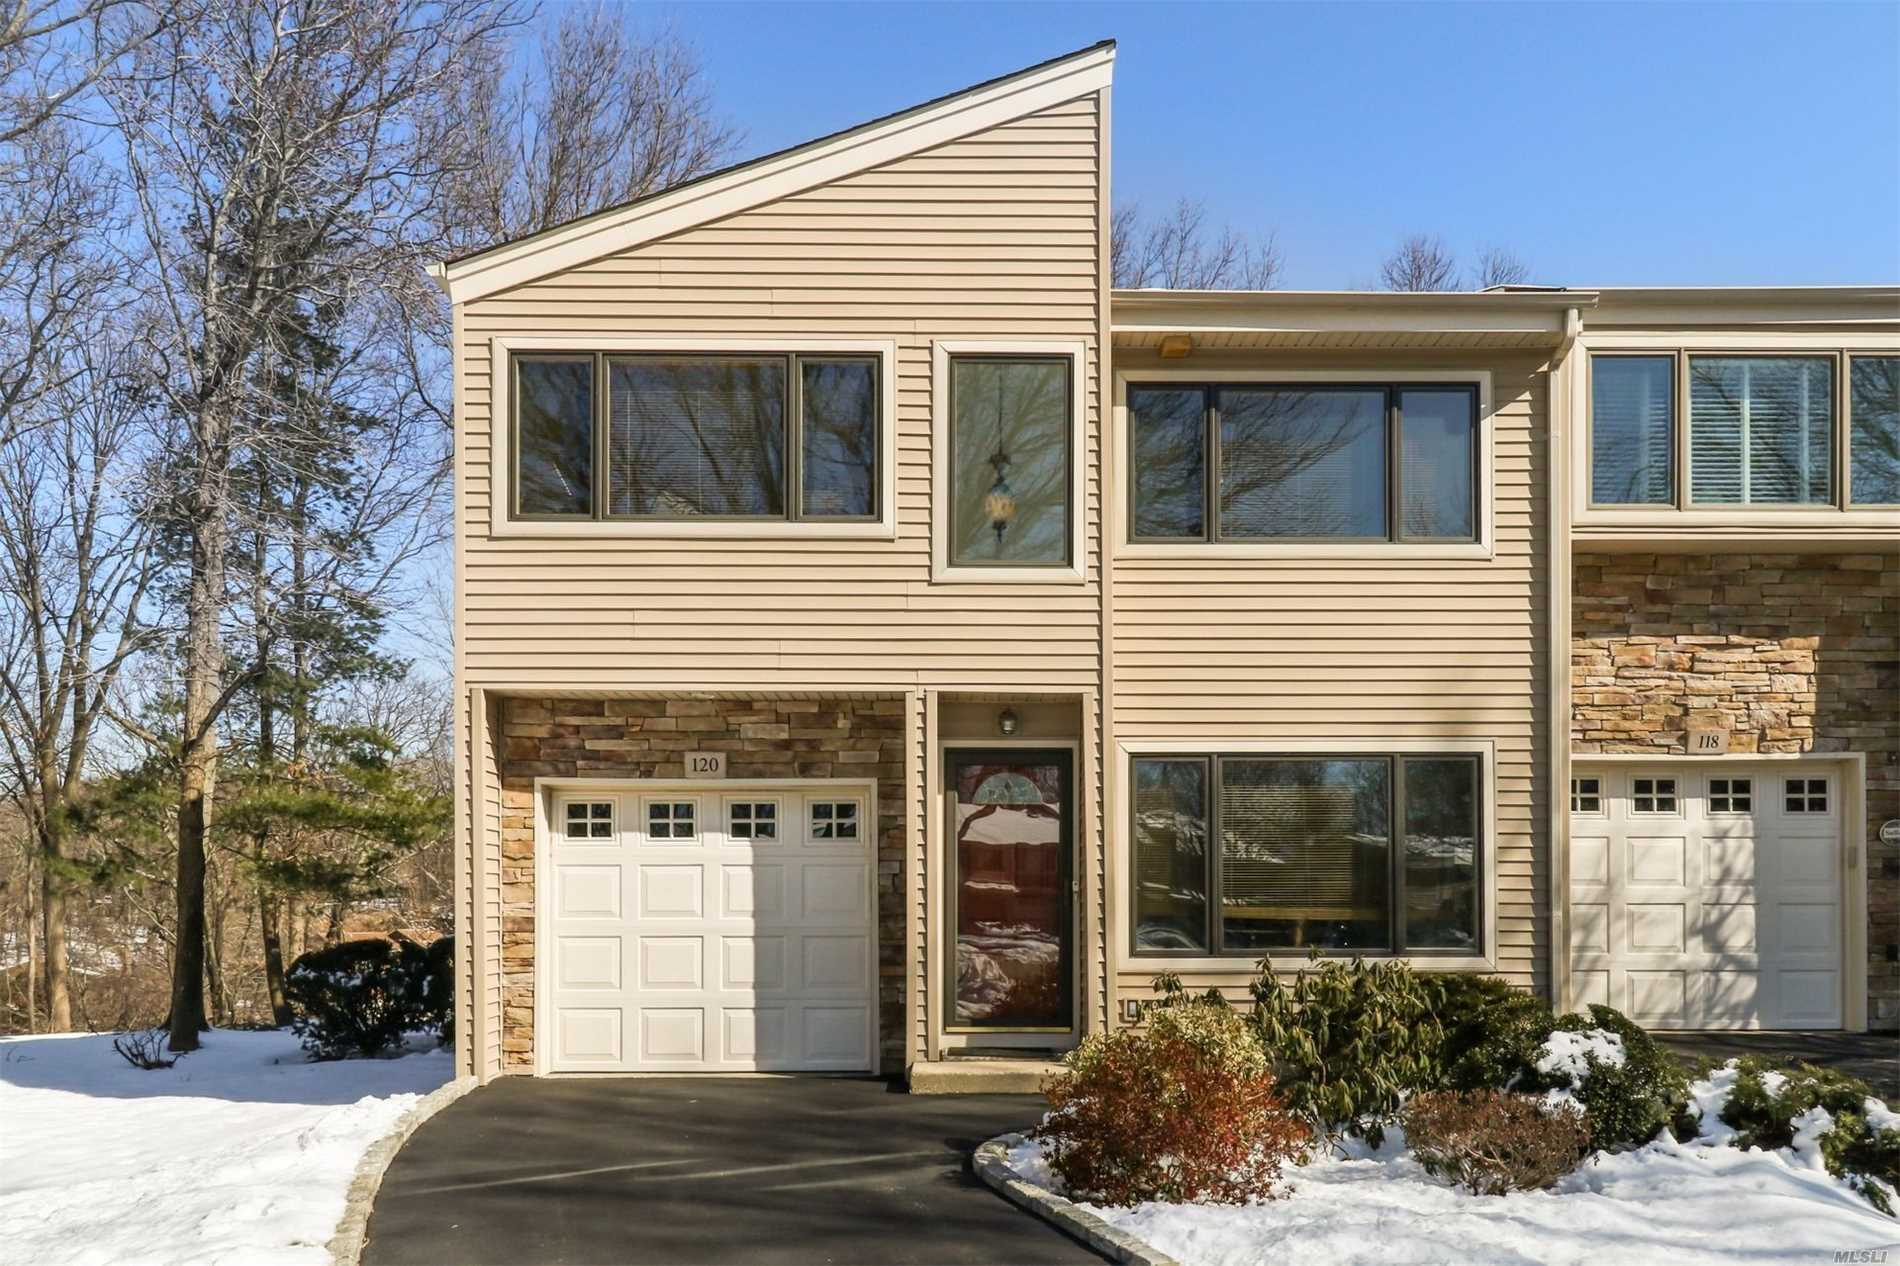 Spacious End Unit Townhome just Minutes from Northport Village. Large Living Space and Back Deck, 1-Car Garage and Full Finished Basement. Tons of Natural Light. Large Master Suite with Private Balcony, 2 Walk in Closets & Master Bath. 2 Large Bedrooms & Full Bath. Plenty of Closet Space and Storage. Make this Home your Own.